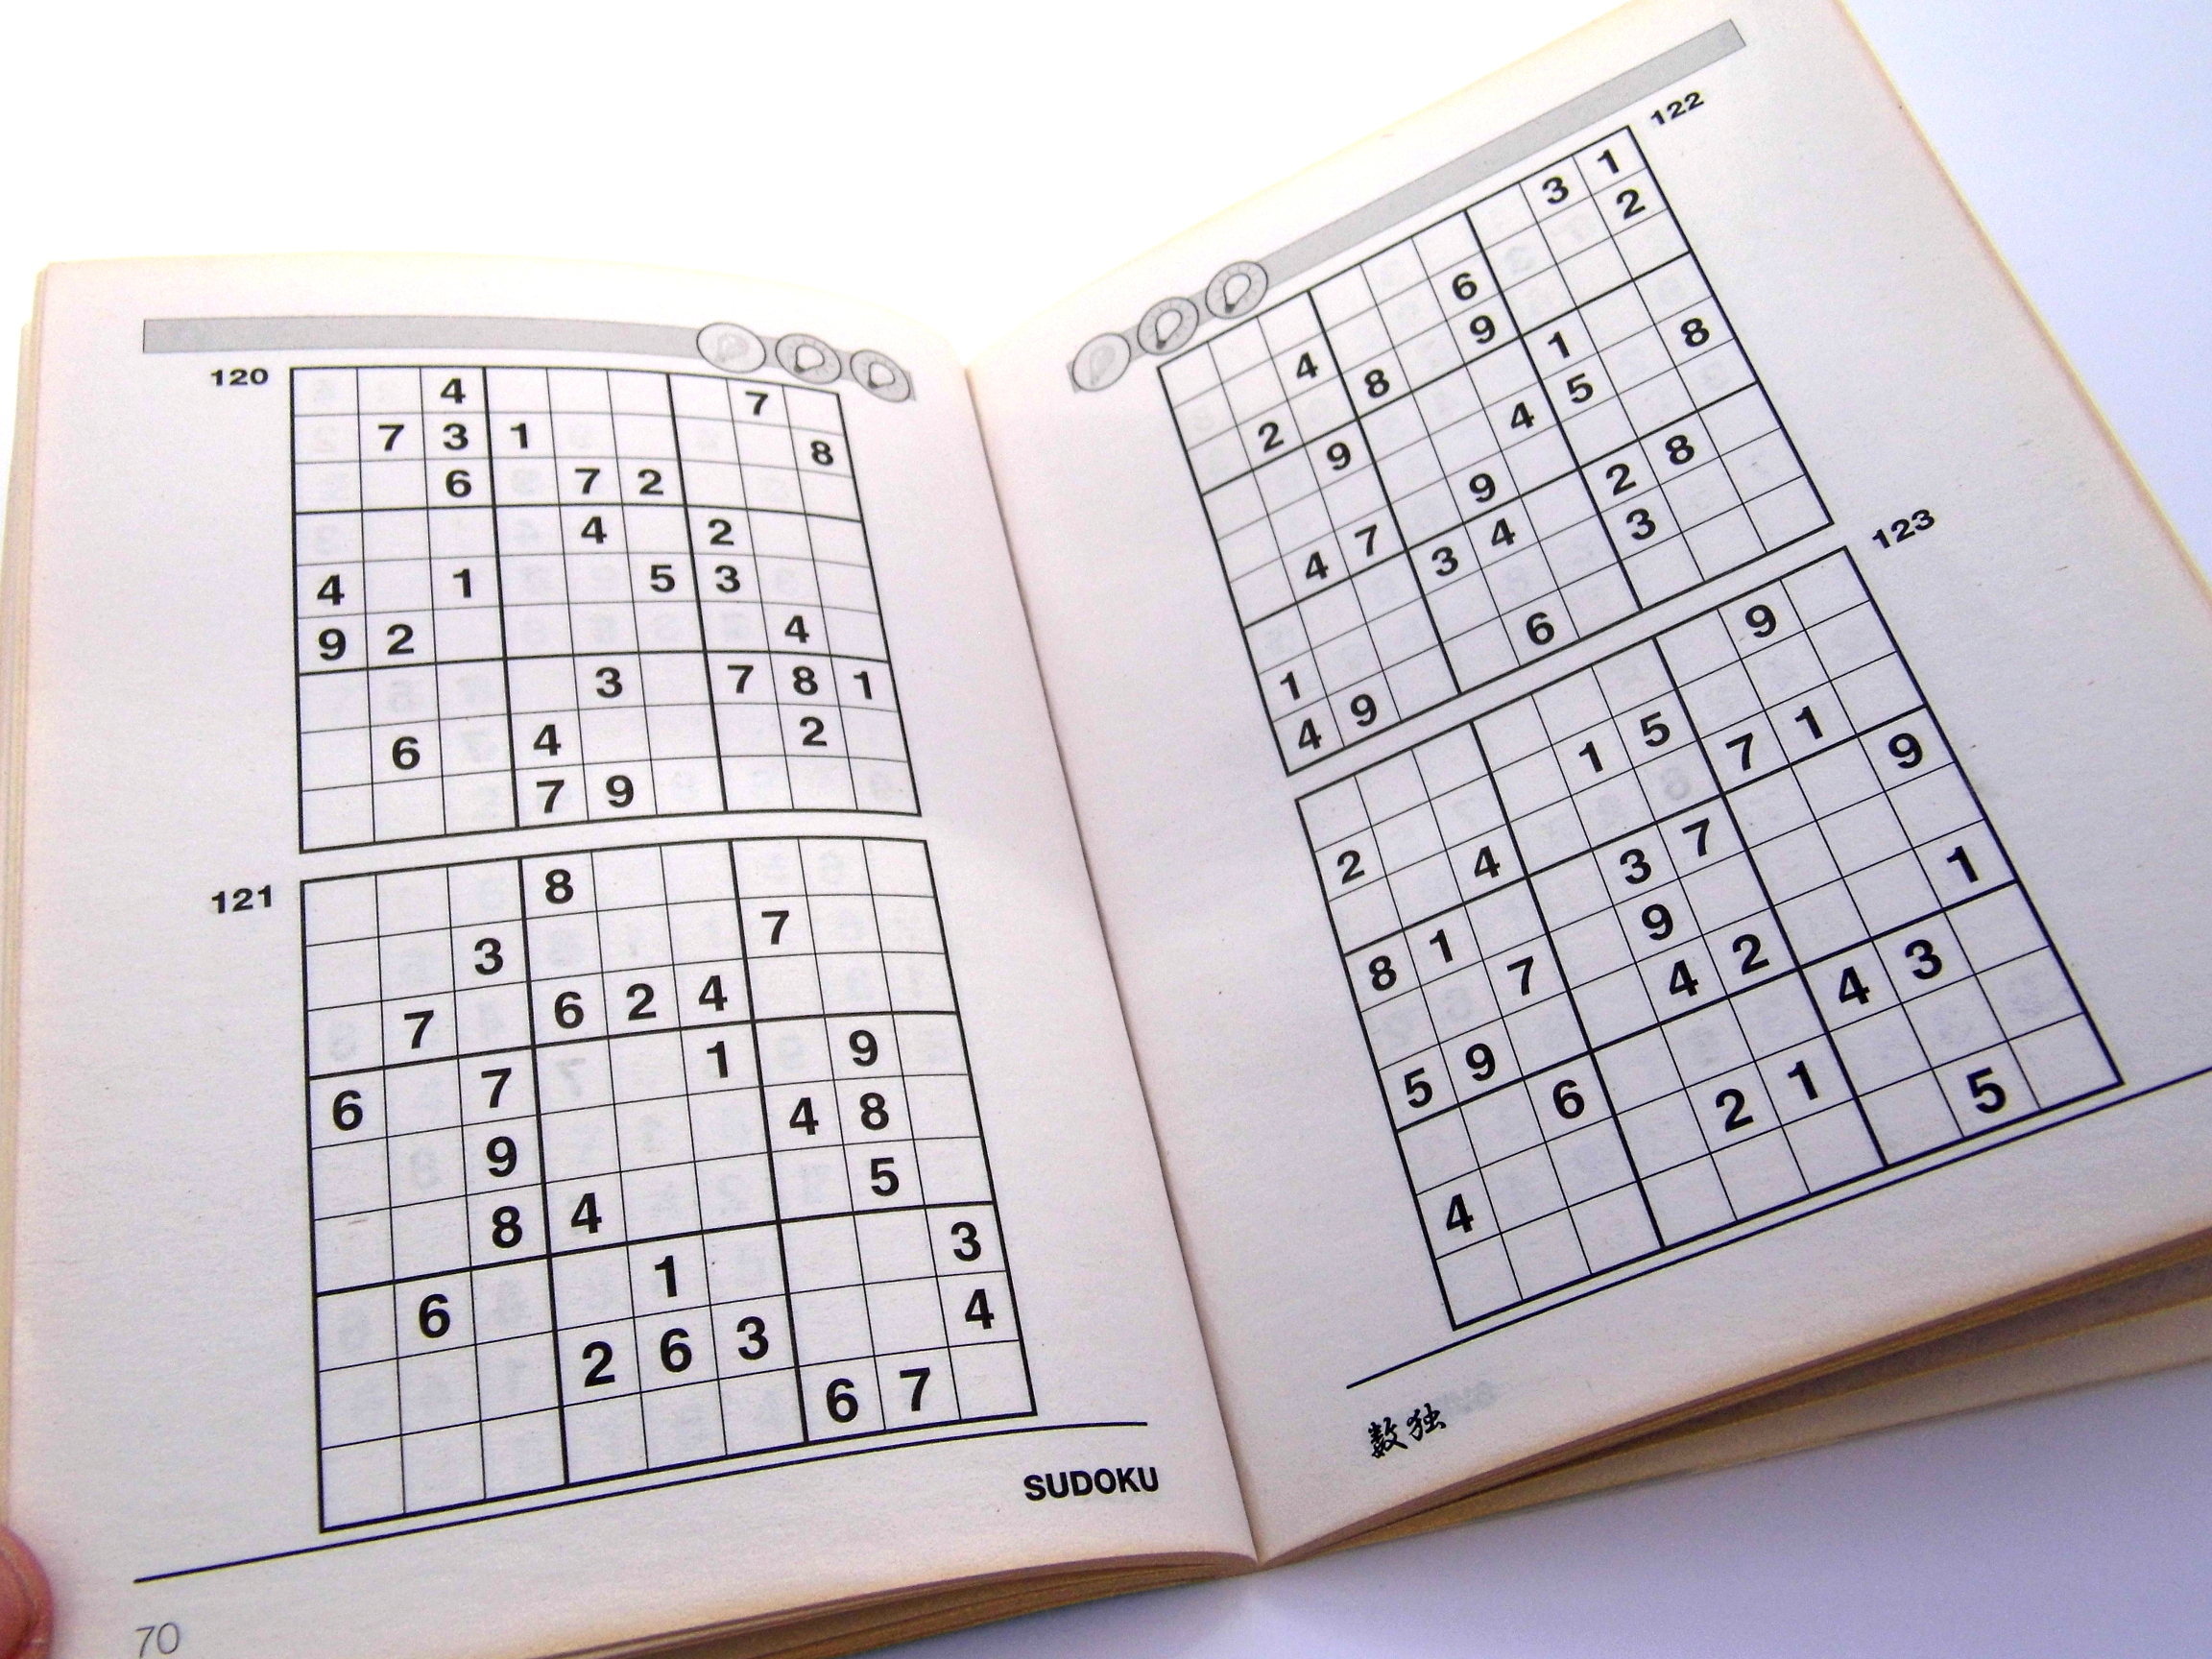 Free Sudoku Puzzles – Free Sudoku Puzzles From Easy To Evil Level - Printable-Puzzles.com Answers